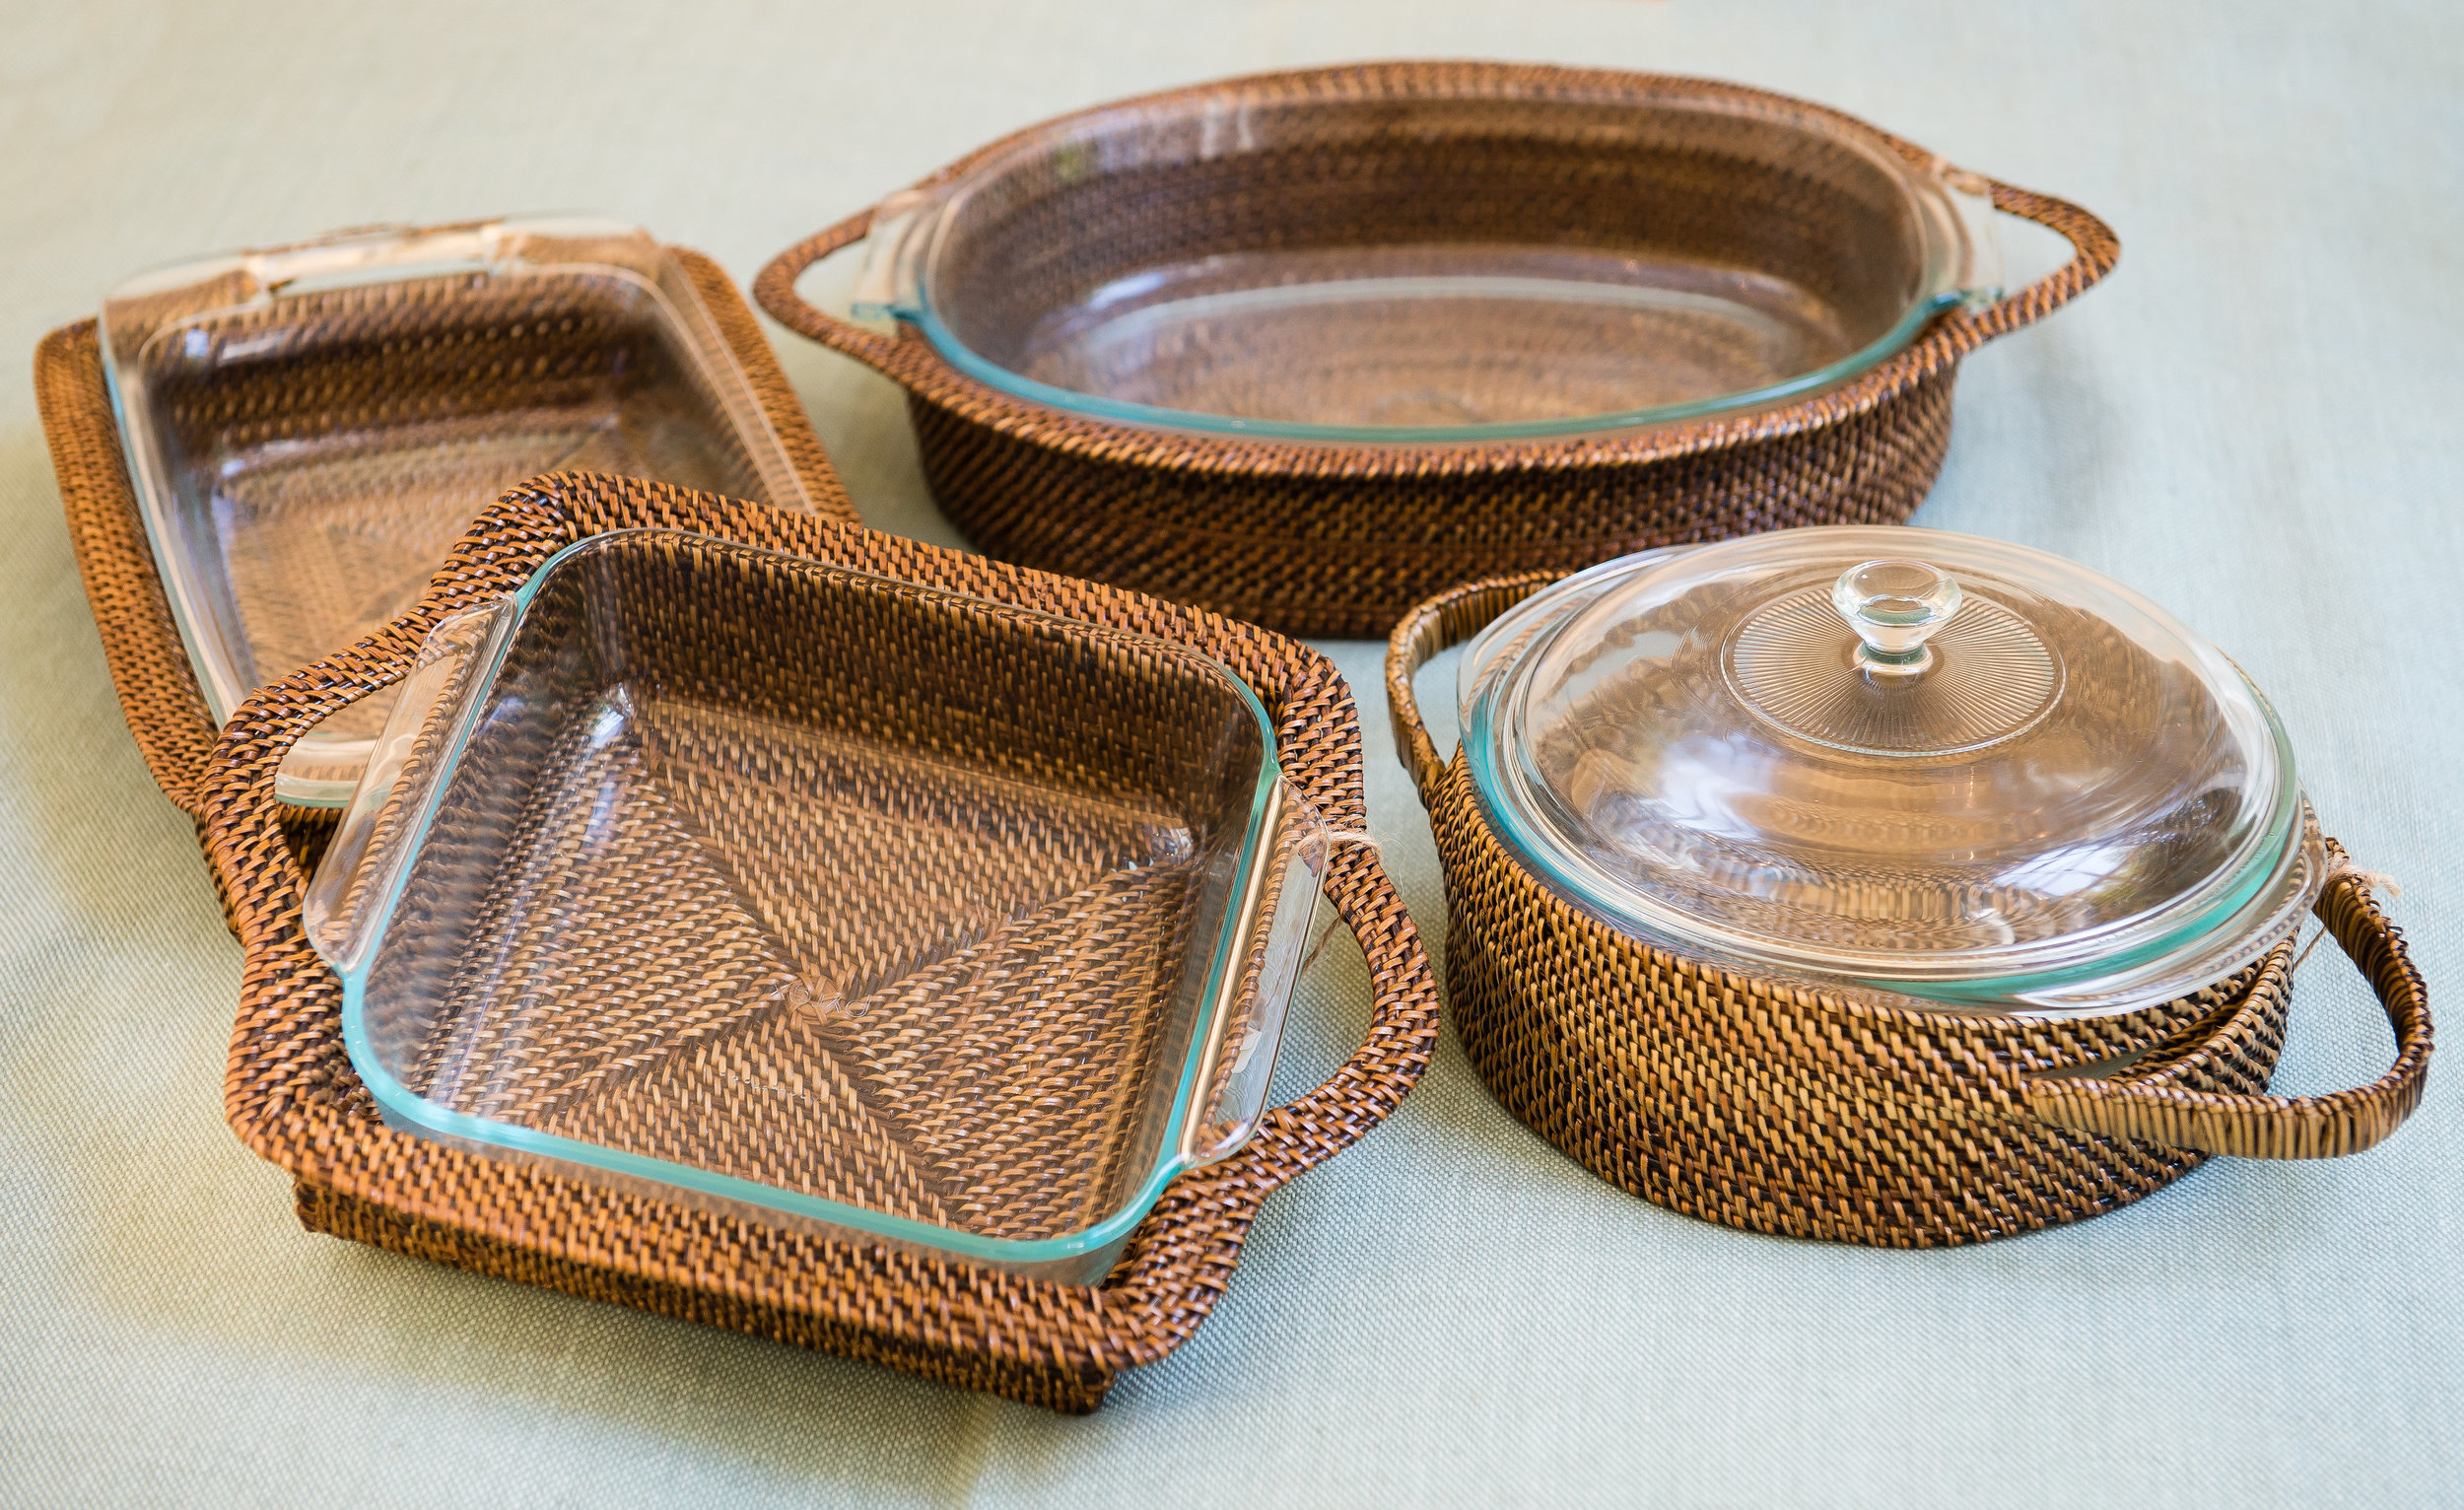 Rattan serving pieces at gift shop in Atlanta, GA